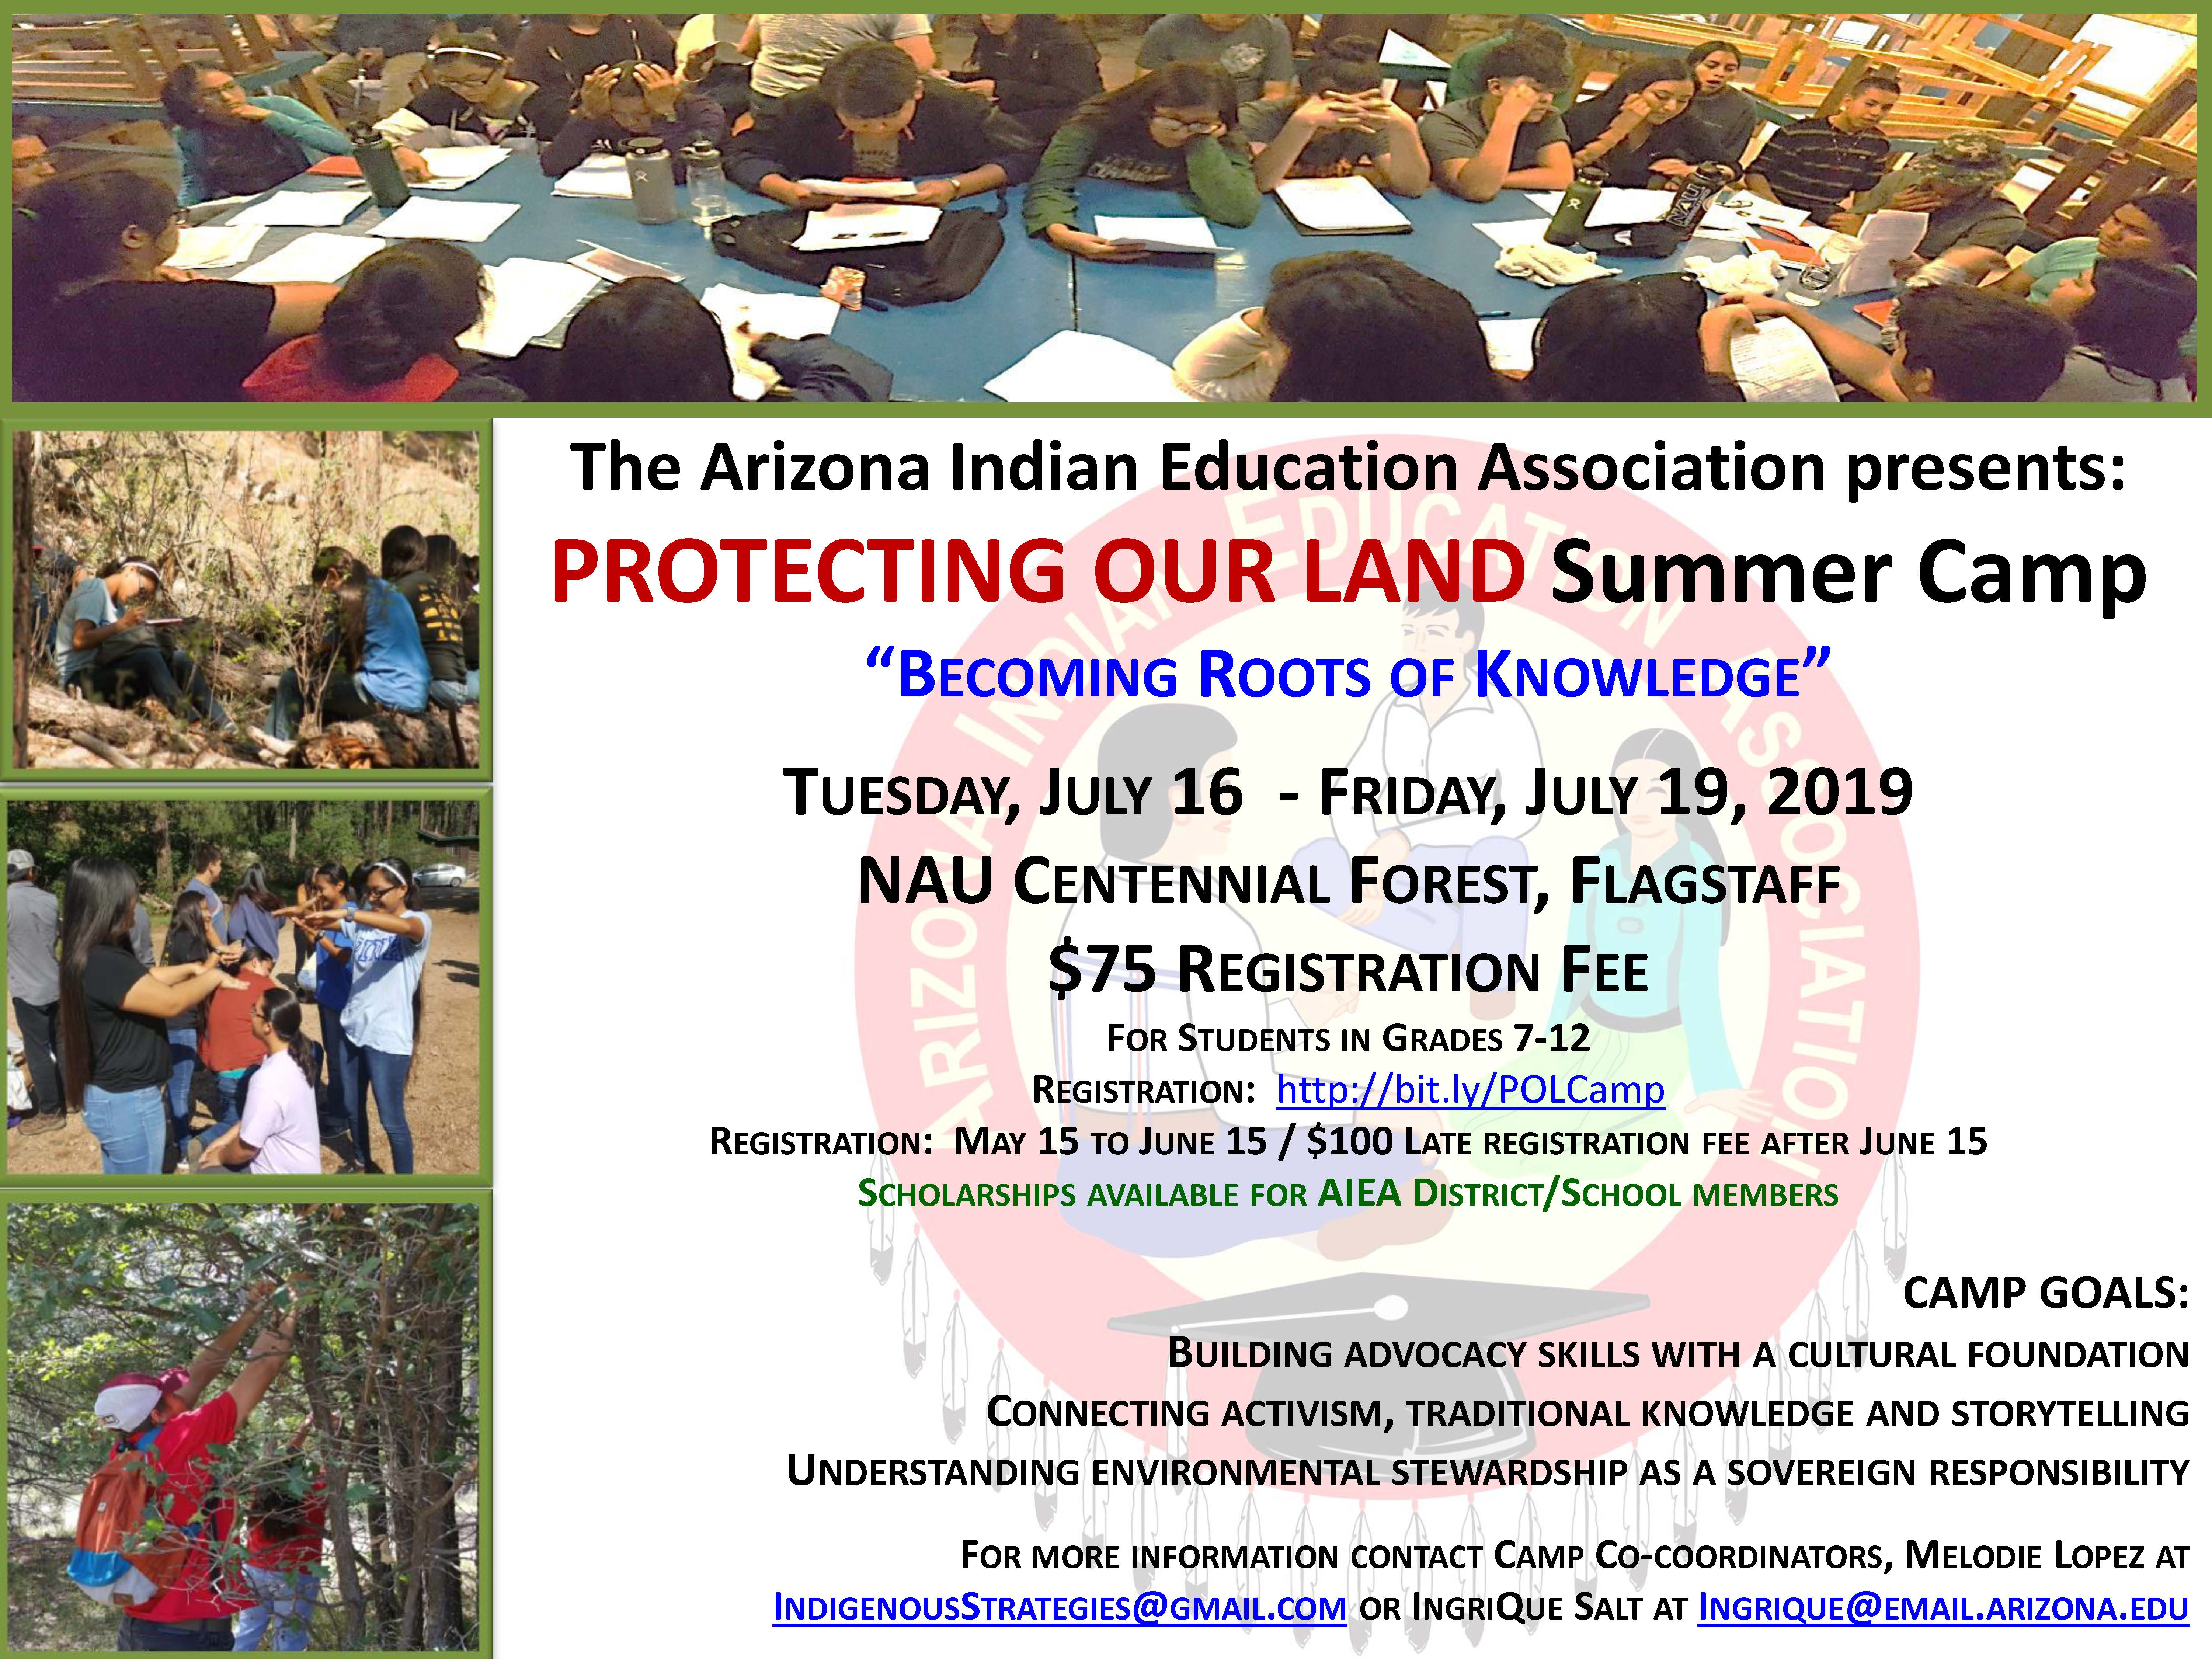 Protecting Our Land Summer Camp